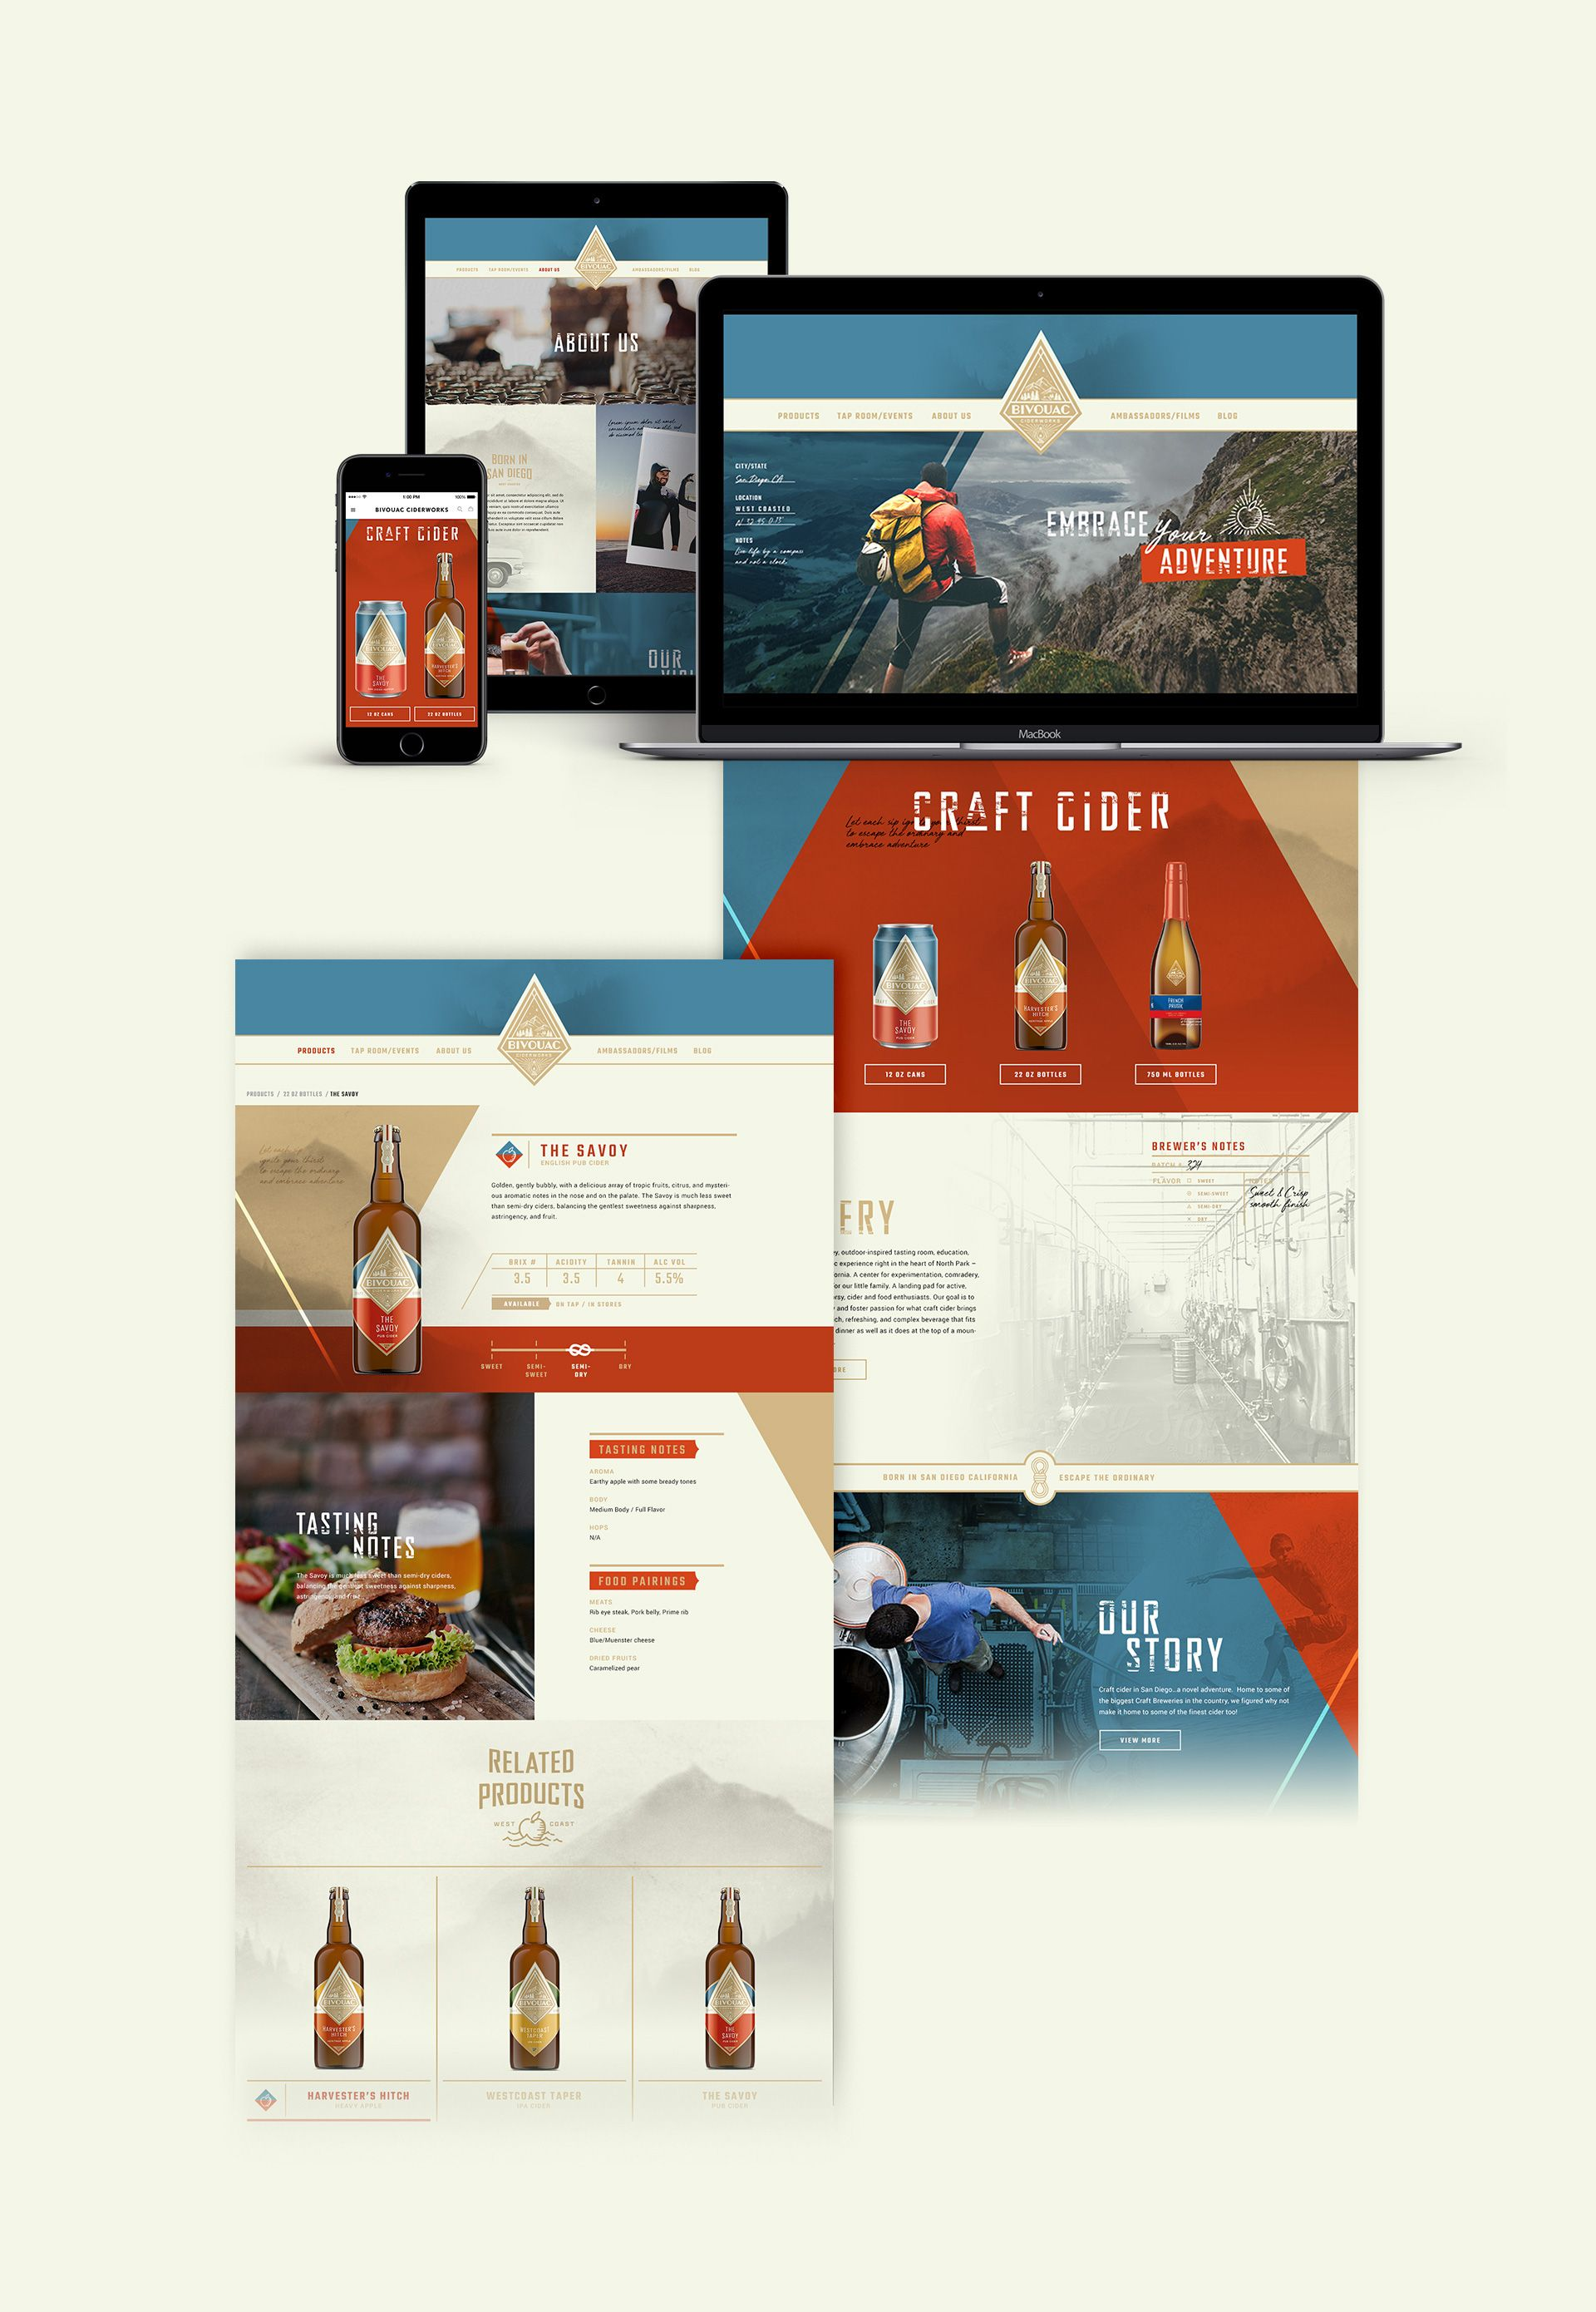 Bivouac Ciderworks In North Park San Diego Is A Place Where Locals Experience The Nostalgia Of Adventure While Enjoying Farm Design Web Layout Design Branding